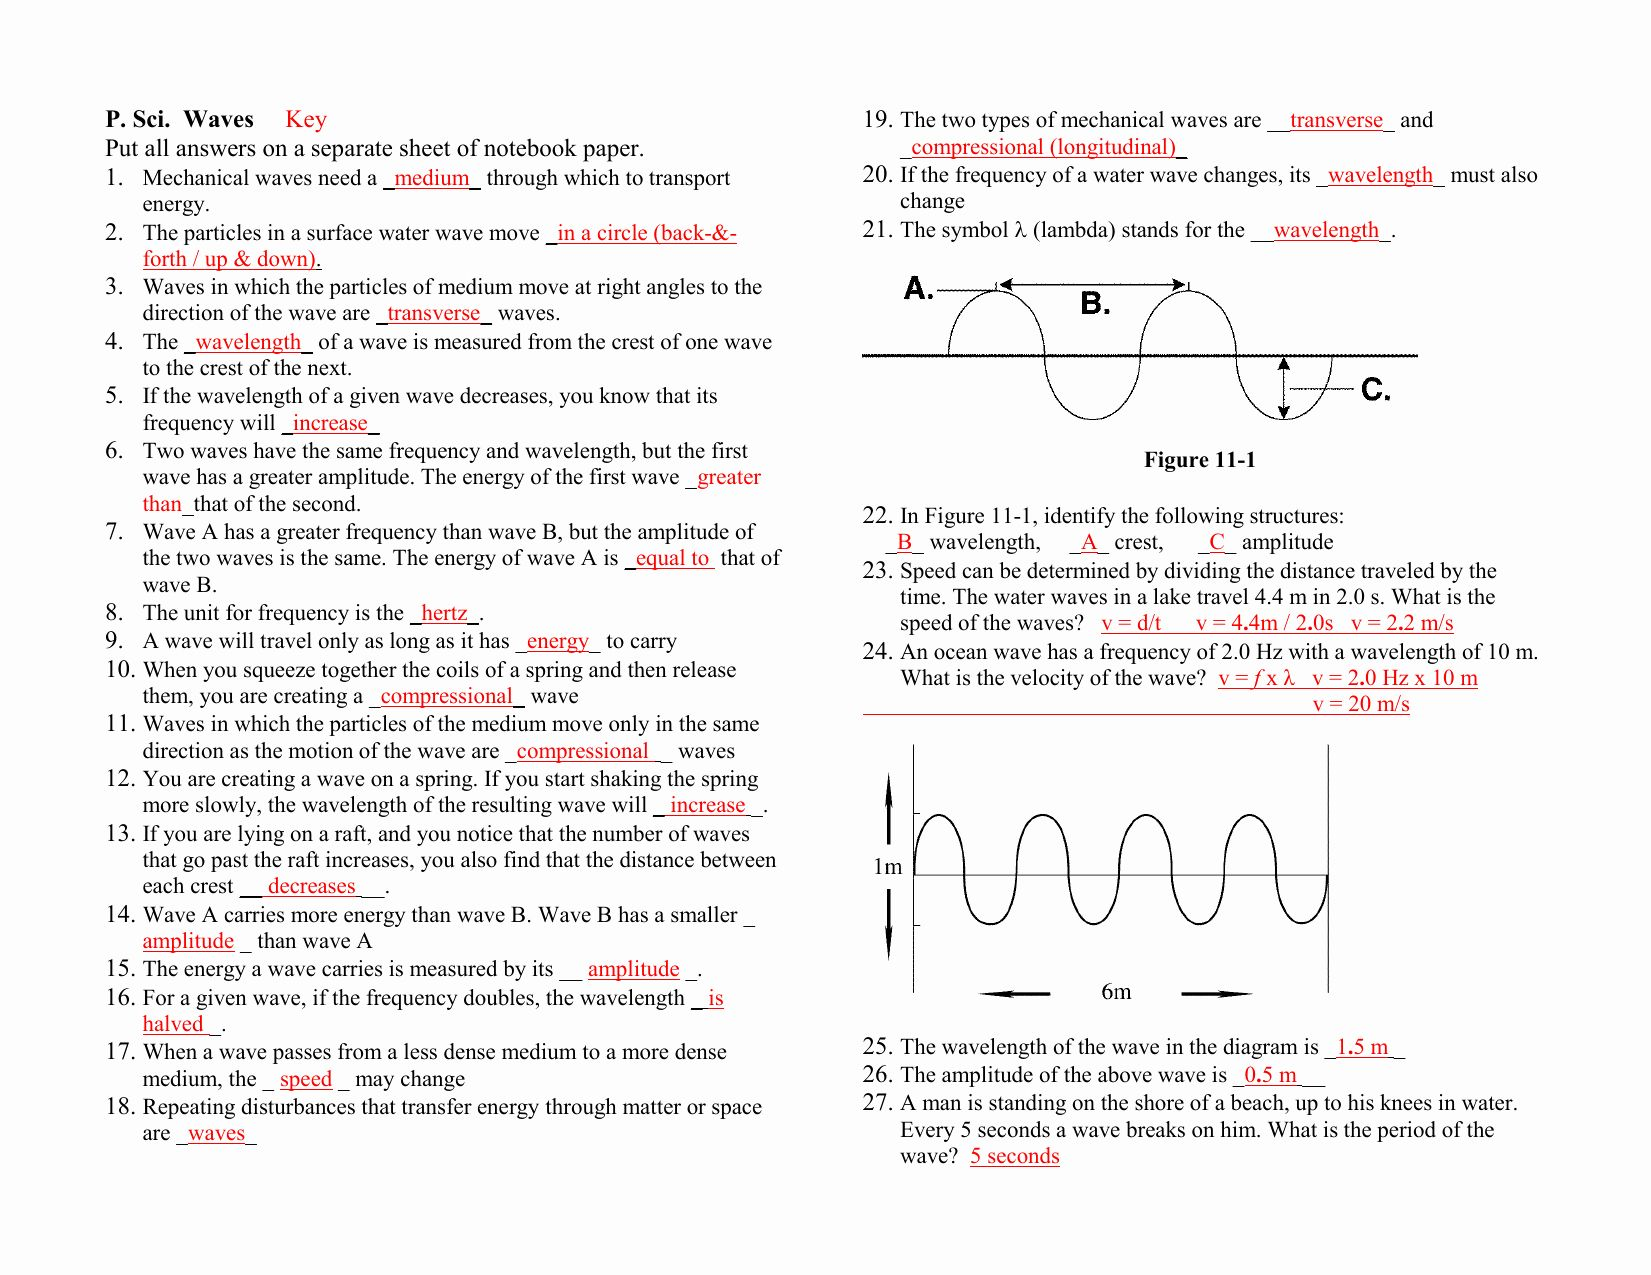 Waves Worksheet Answer Key Awesome Waves Study Guide Key